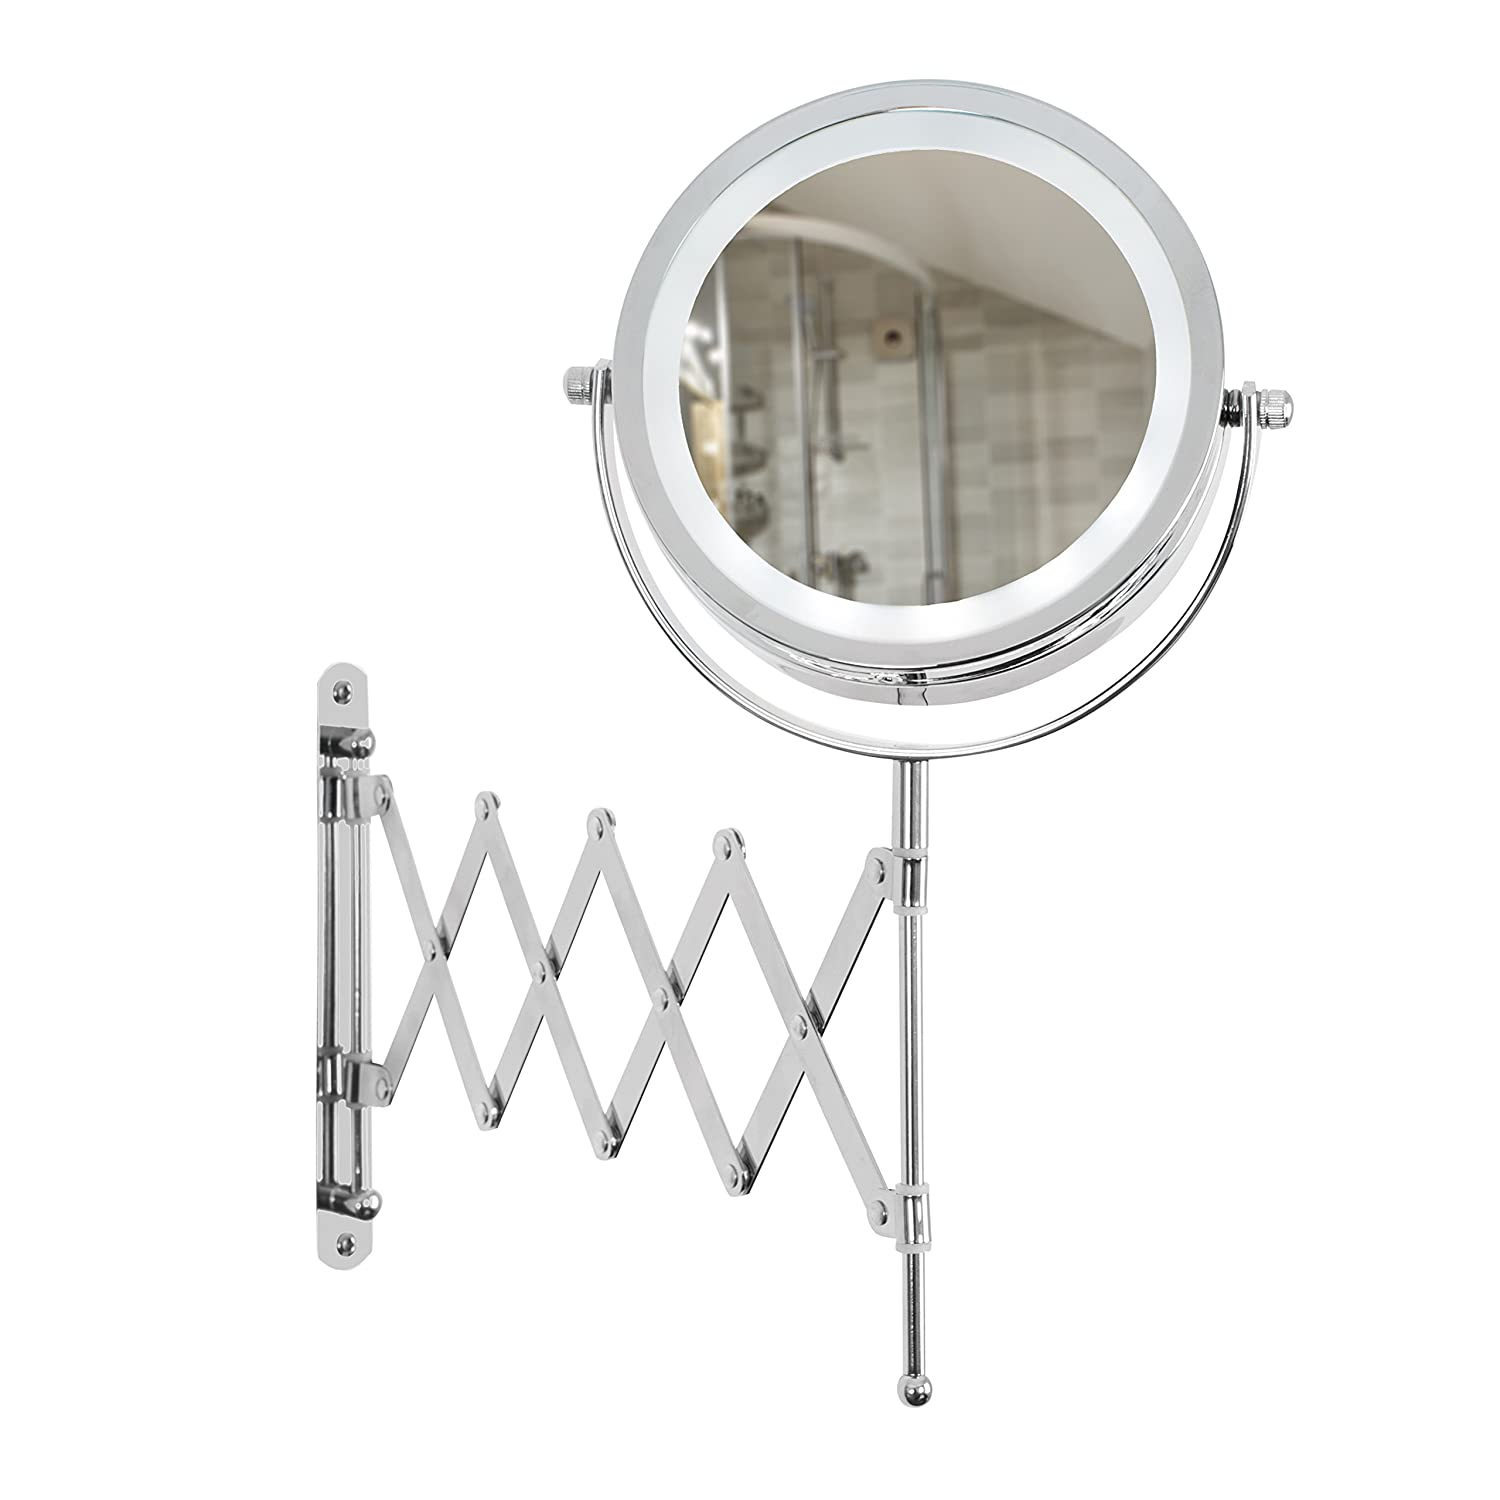 MiniSun Miroir 15 cm, double face - Plat & 3 x grossissement. 12 LED blanc par piles (3 x AAA). Chrome Extensible & orientable. Rasage, Maquillage